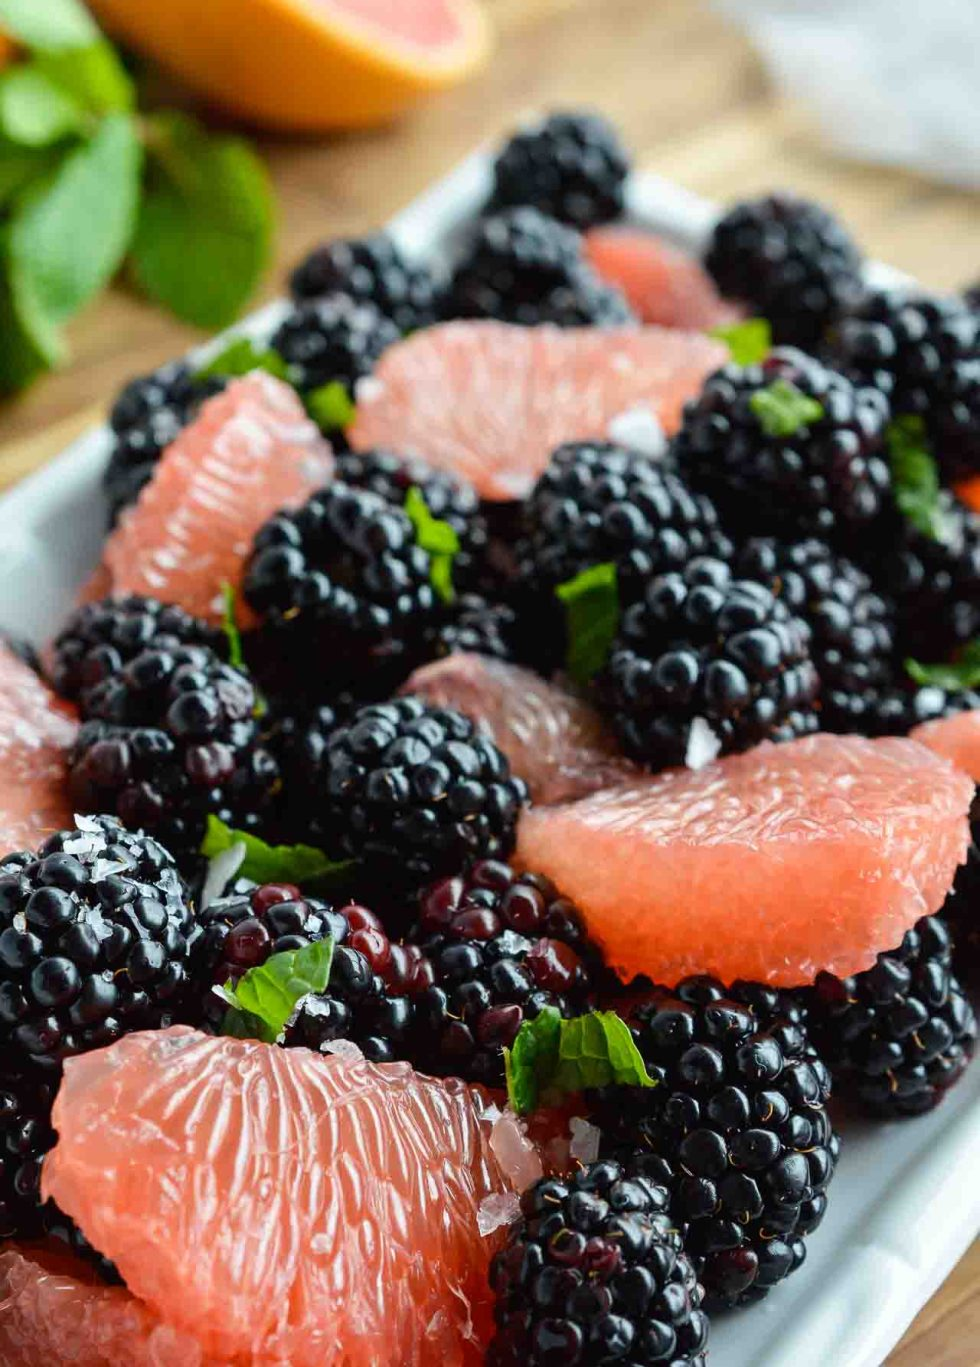 grapefruit segments, blackberries and mint